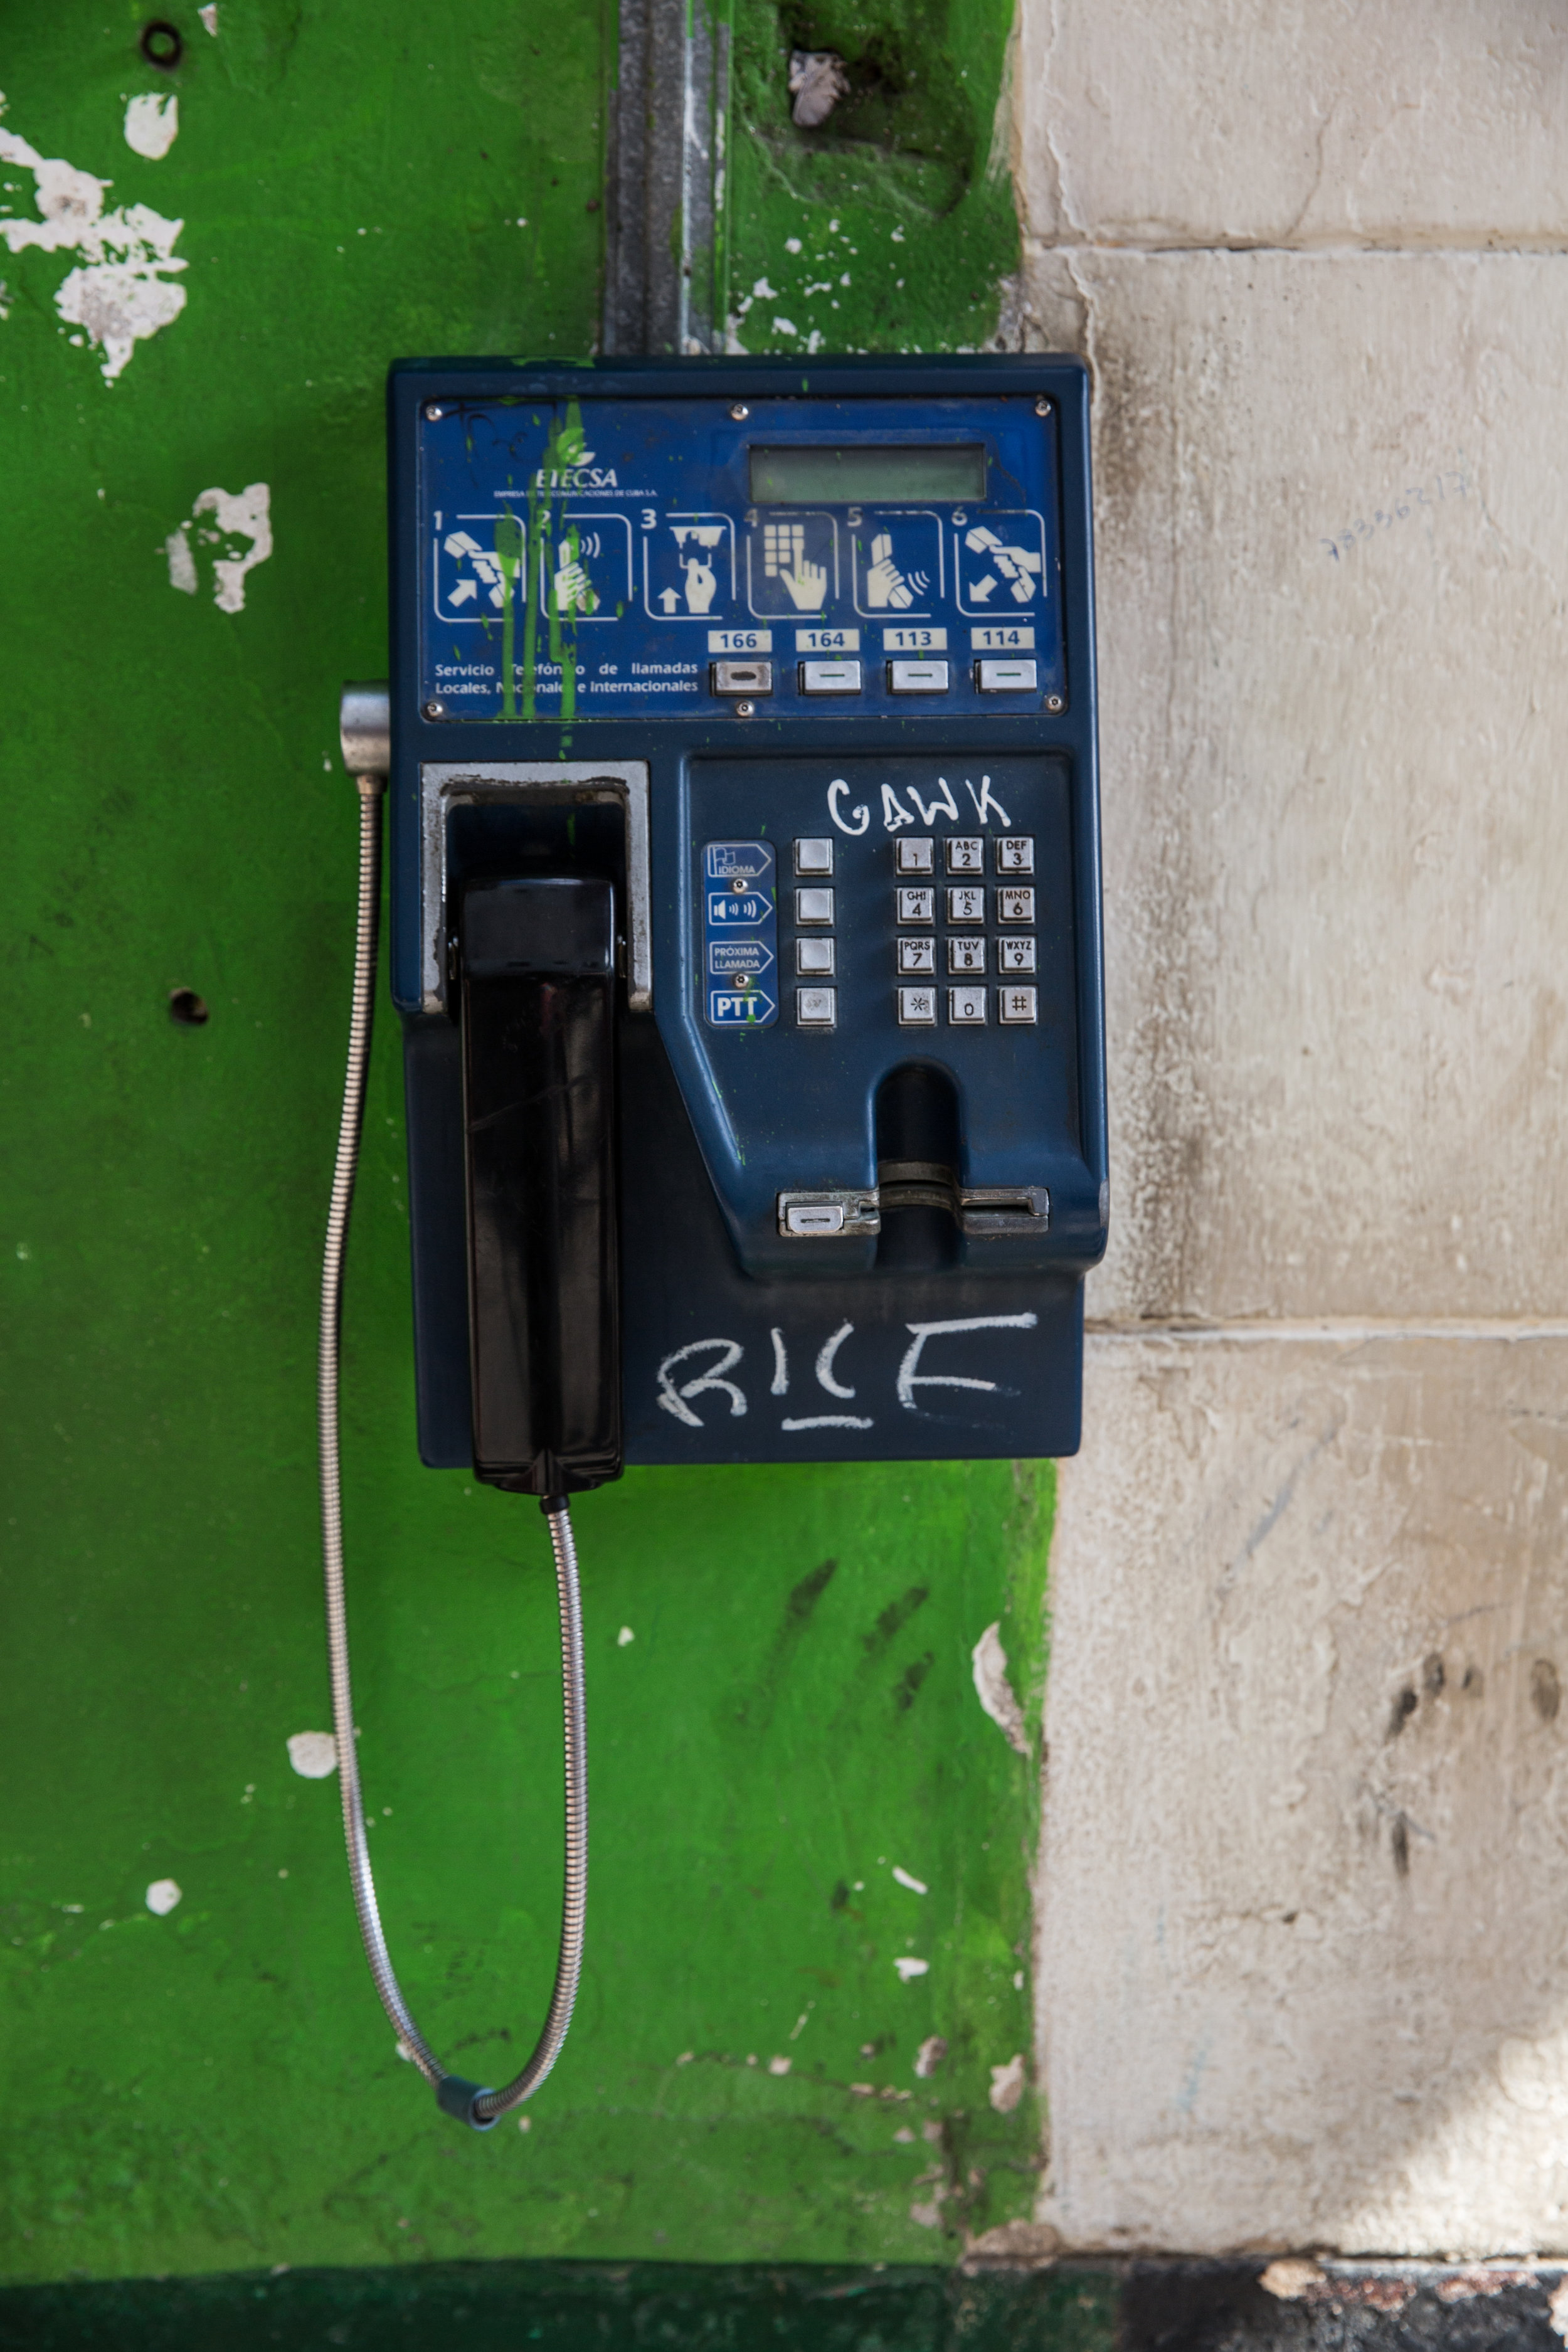 Landlines are abundant in Havana, as cell service is very limited throughout the island.